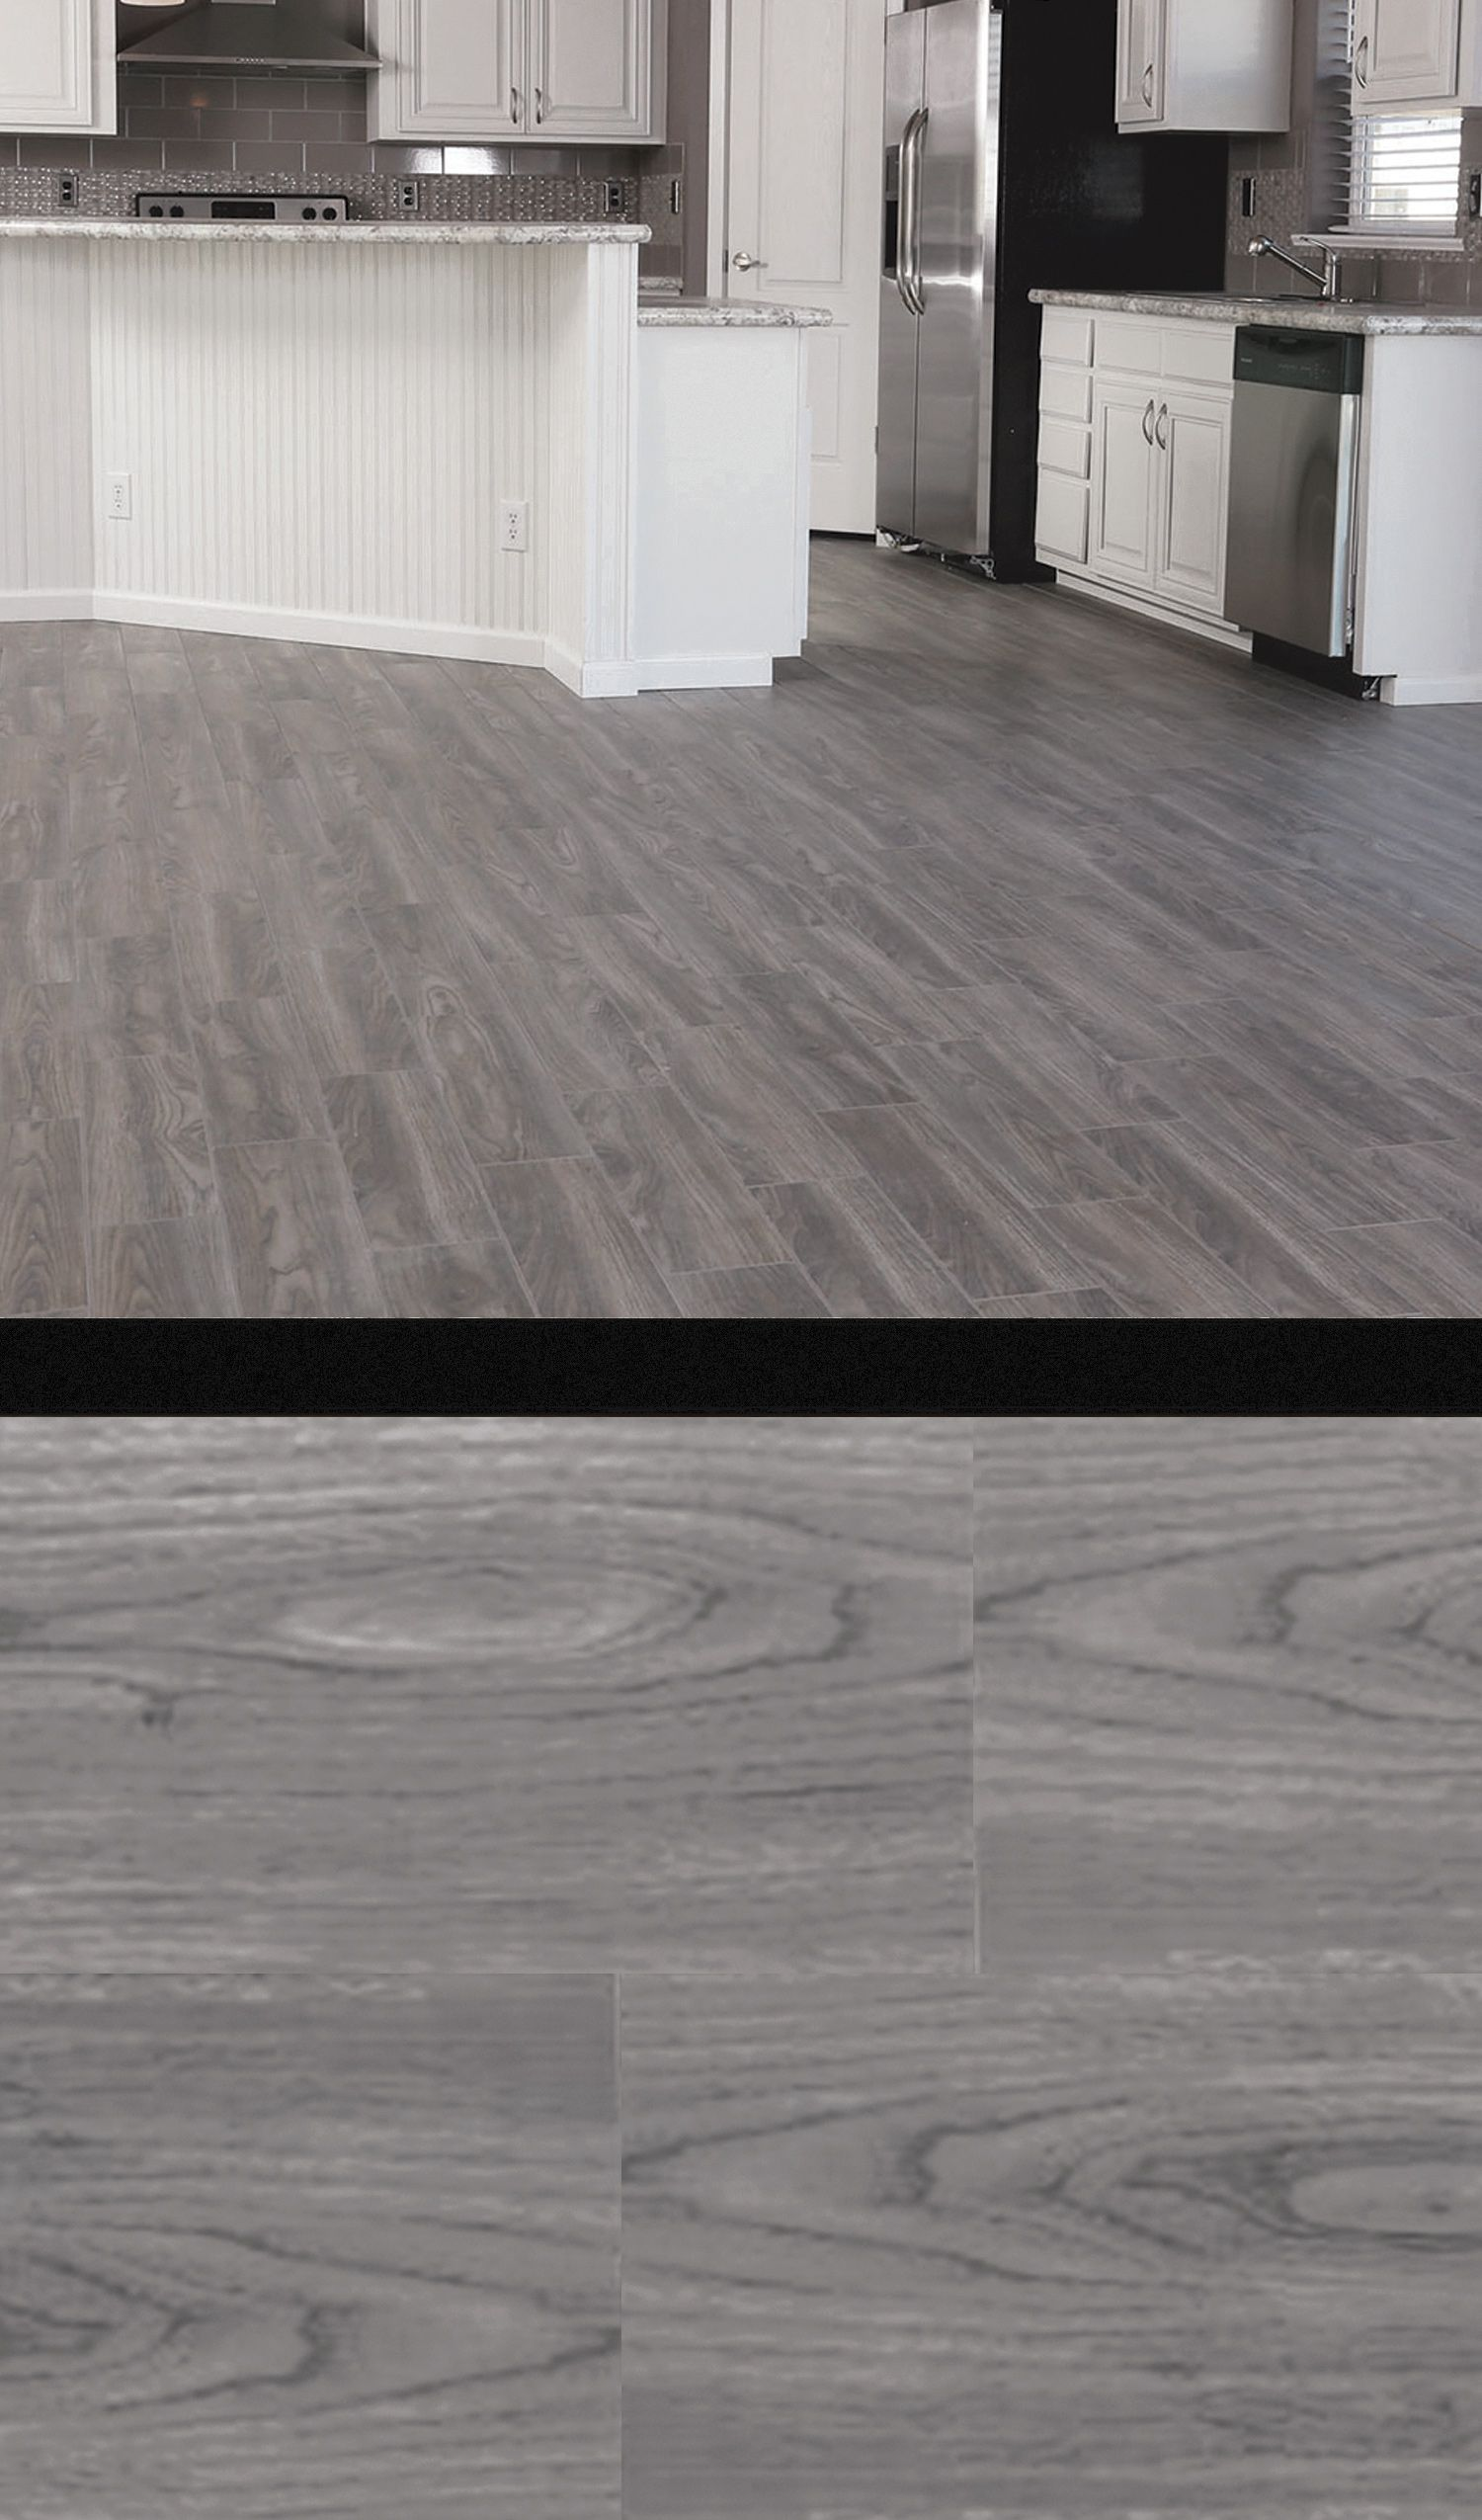 Whether You Re Starting A Project Or Just Adding Some Finishing Touches Snapstone Interlocking Porcelain Tile Has Covered